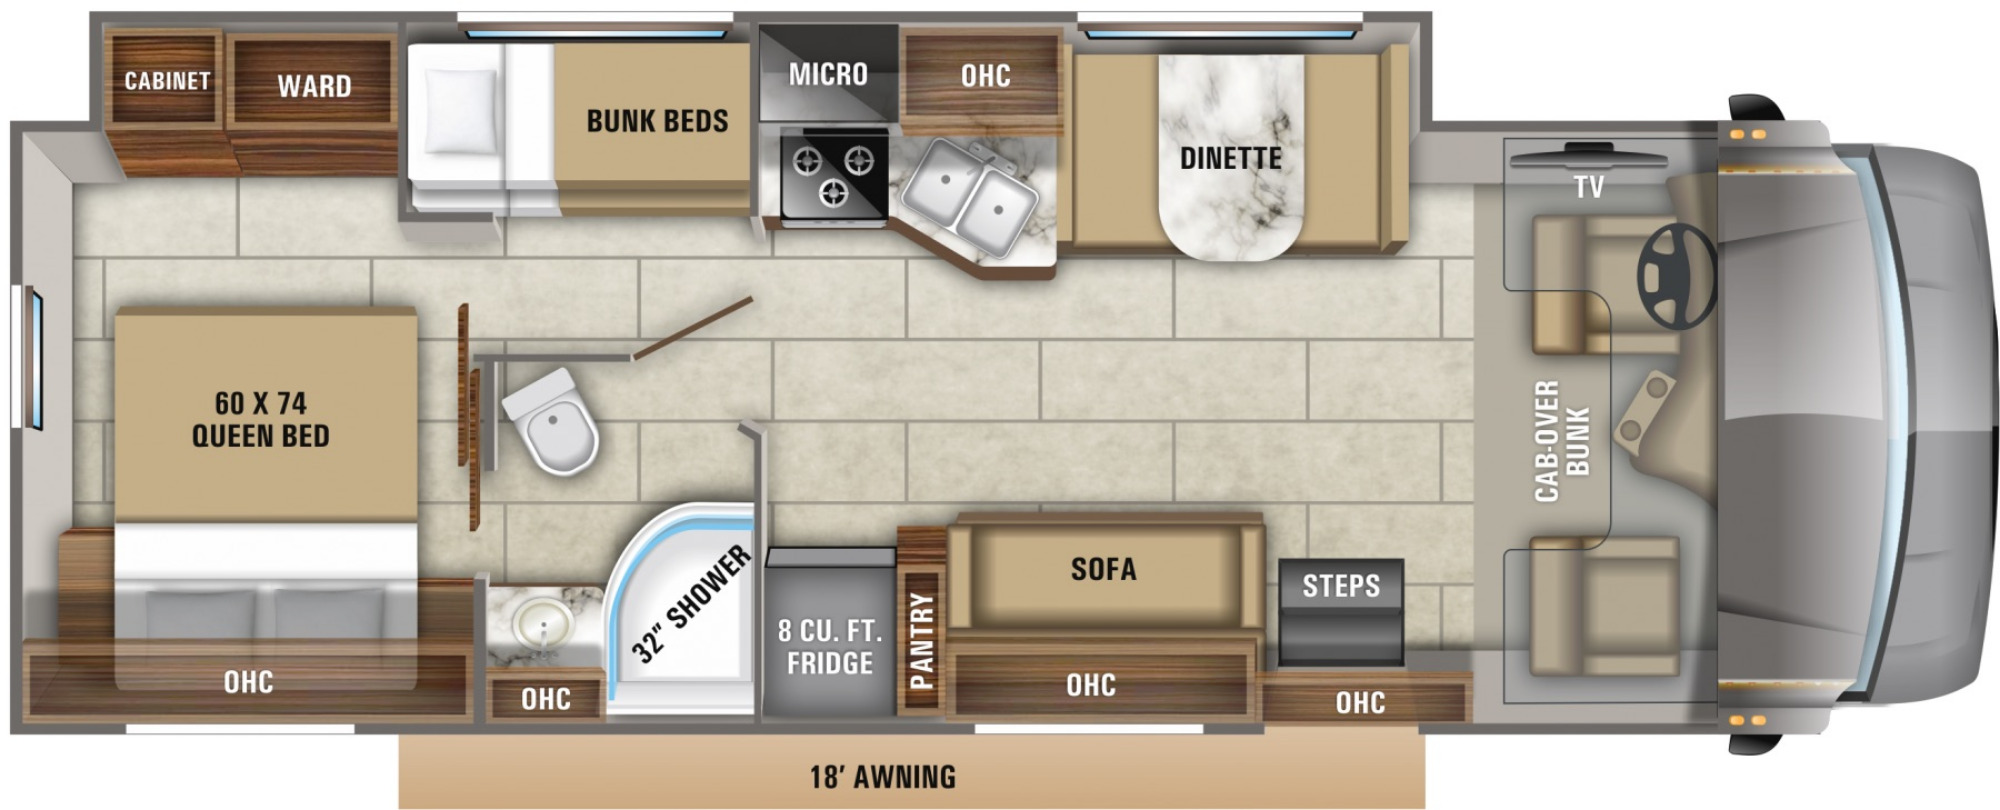 View Floor Plan for 2021 JAYCO REDHAWK 31F